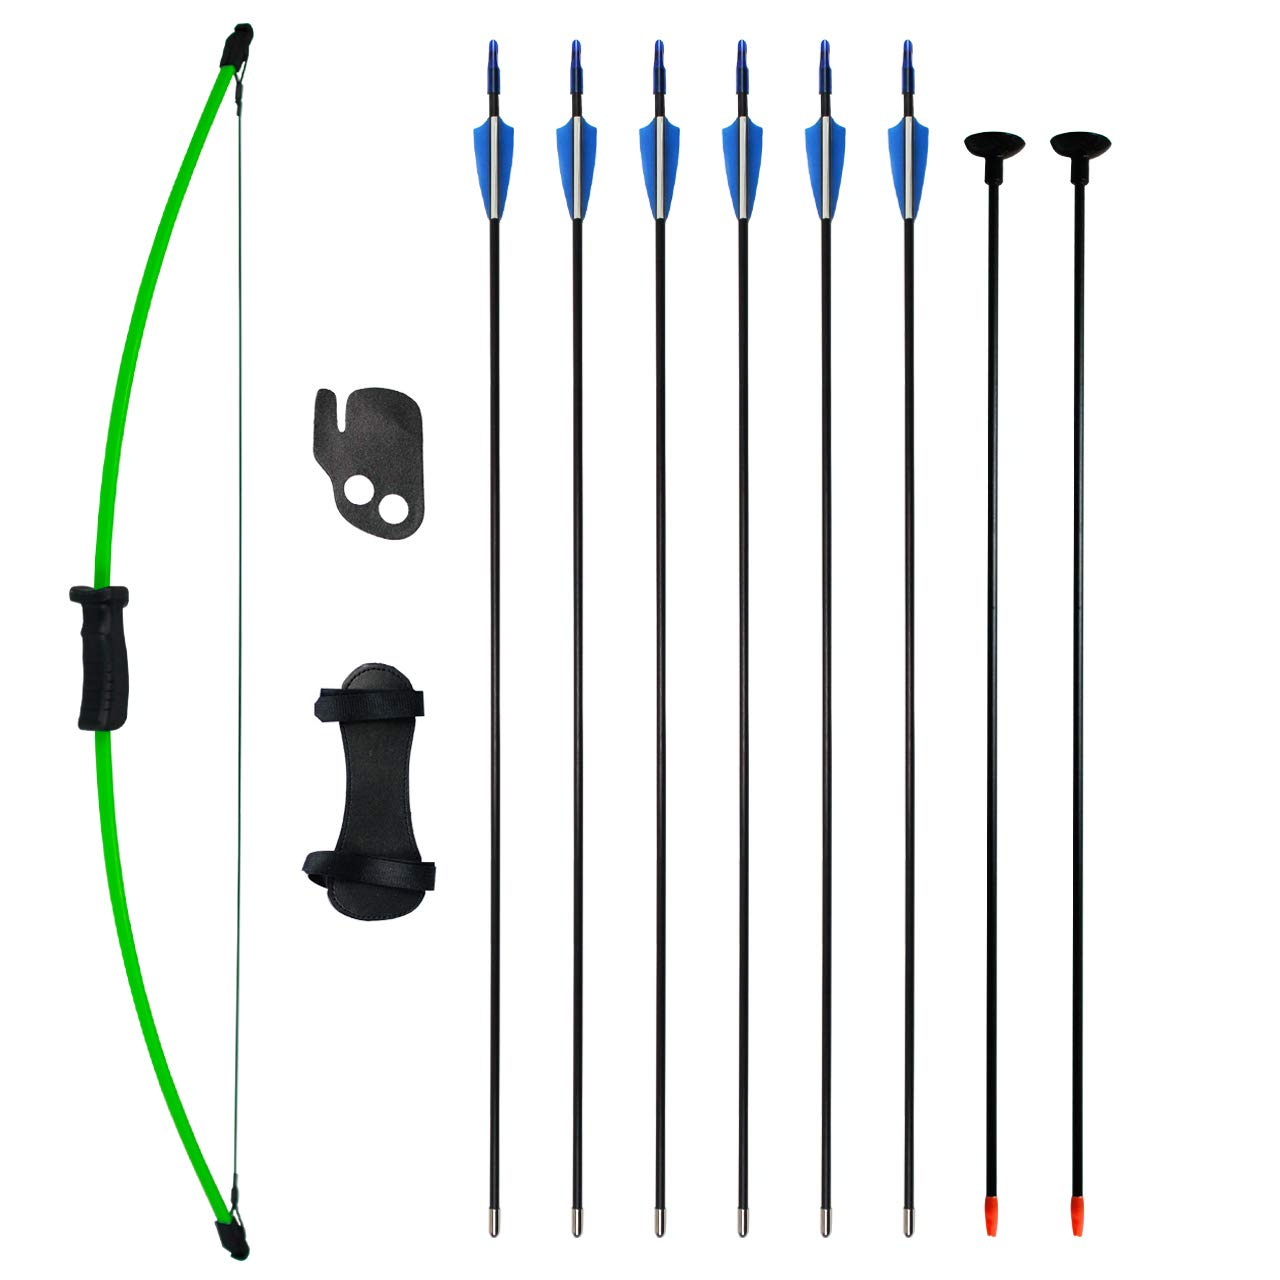 SinoArt Bow and Arrow Set for Teens Outdoor Sports Game Hunting Gift Archery Bow Set with 8 Arrows 16 Lb (Green)